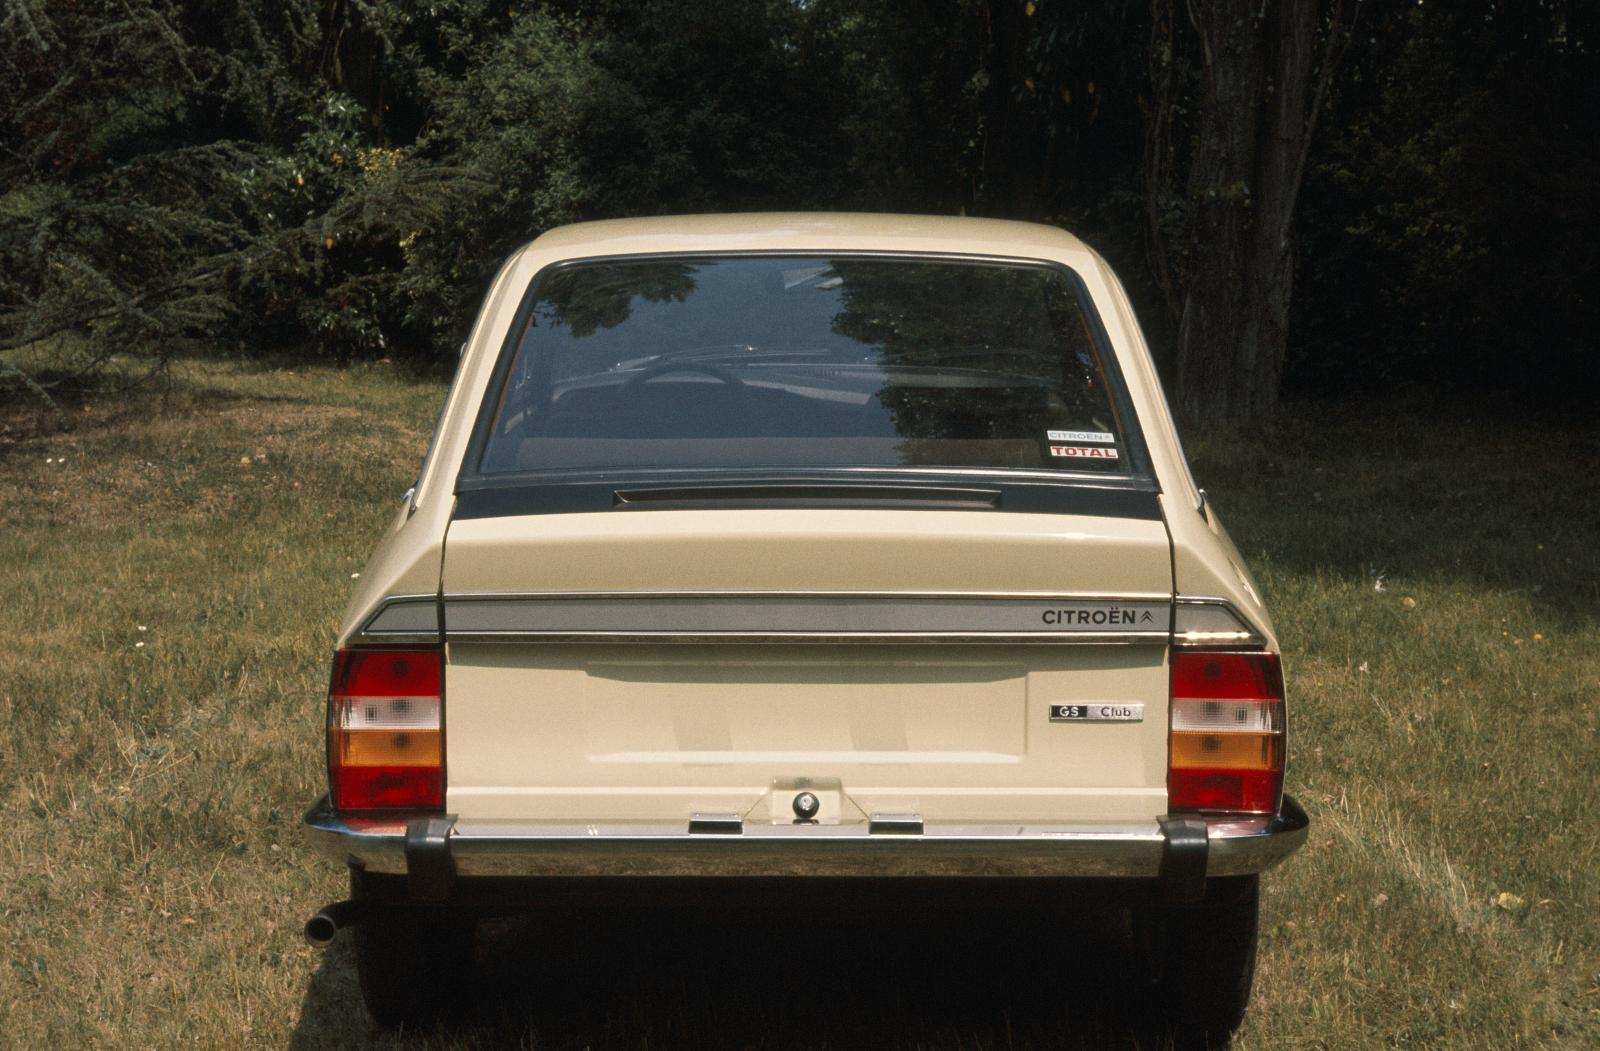 GS Club 1977 rear view